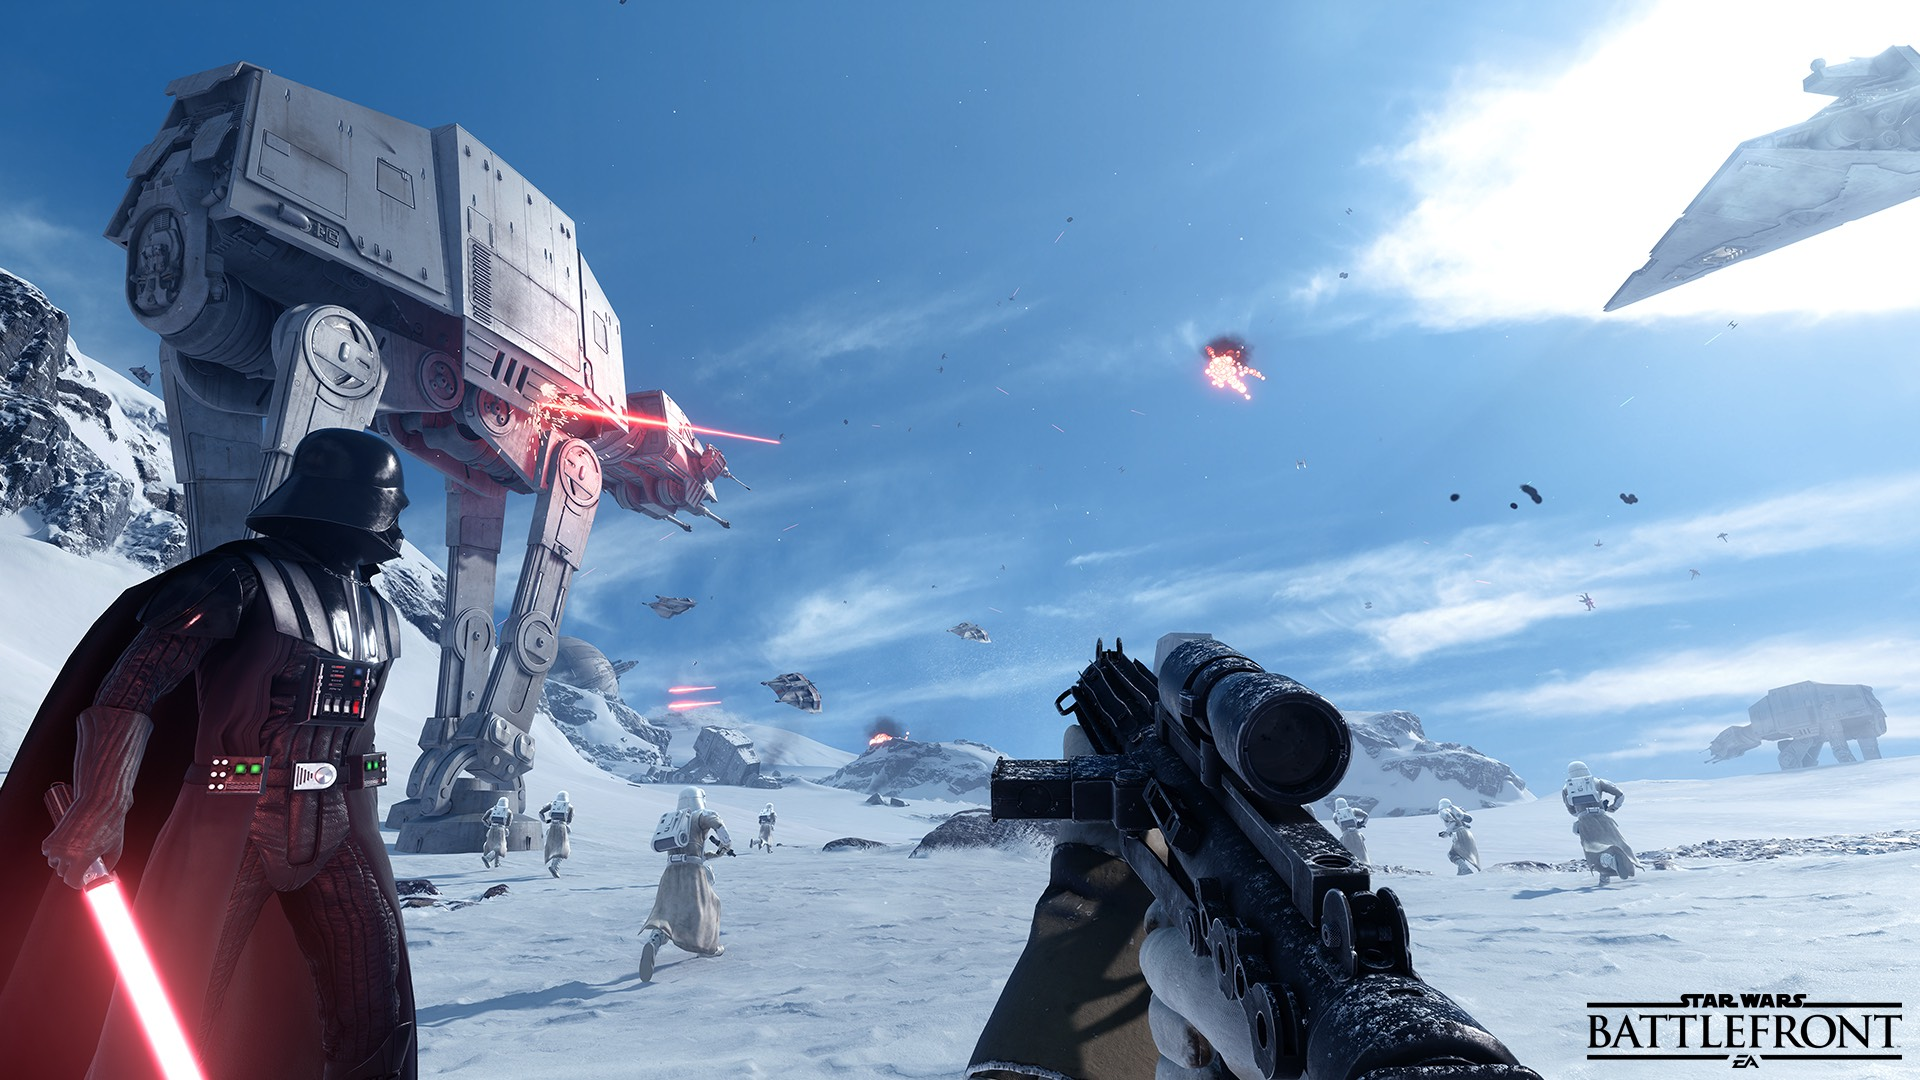 STAR WARS: BATTLEFRONT DELUXE EDITION [FULL WARRANTY]